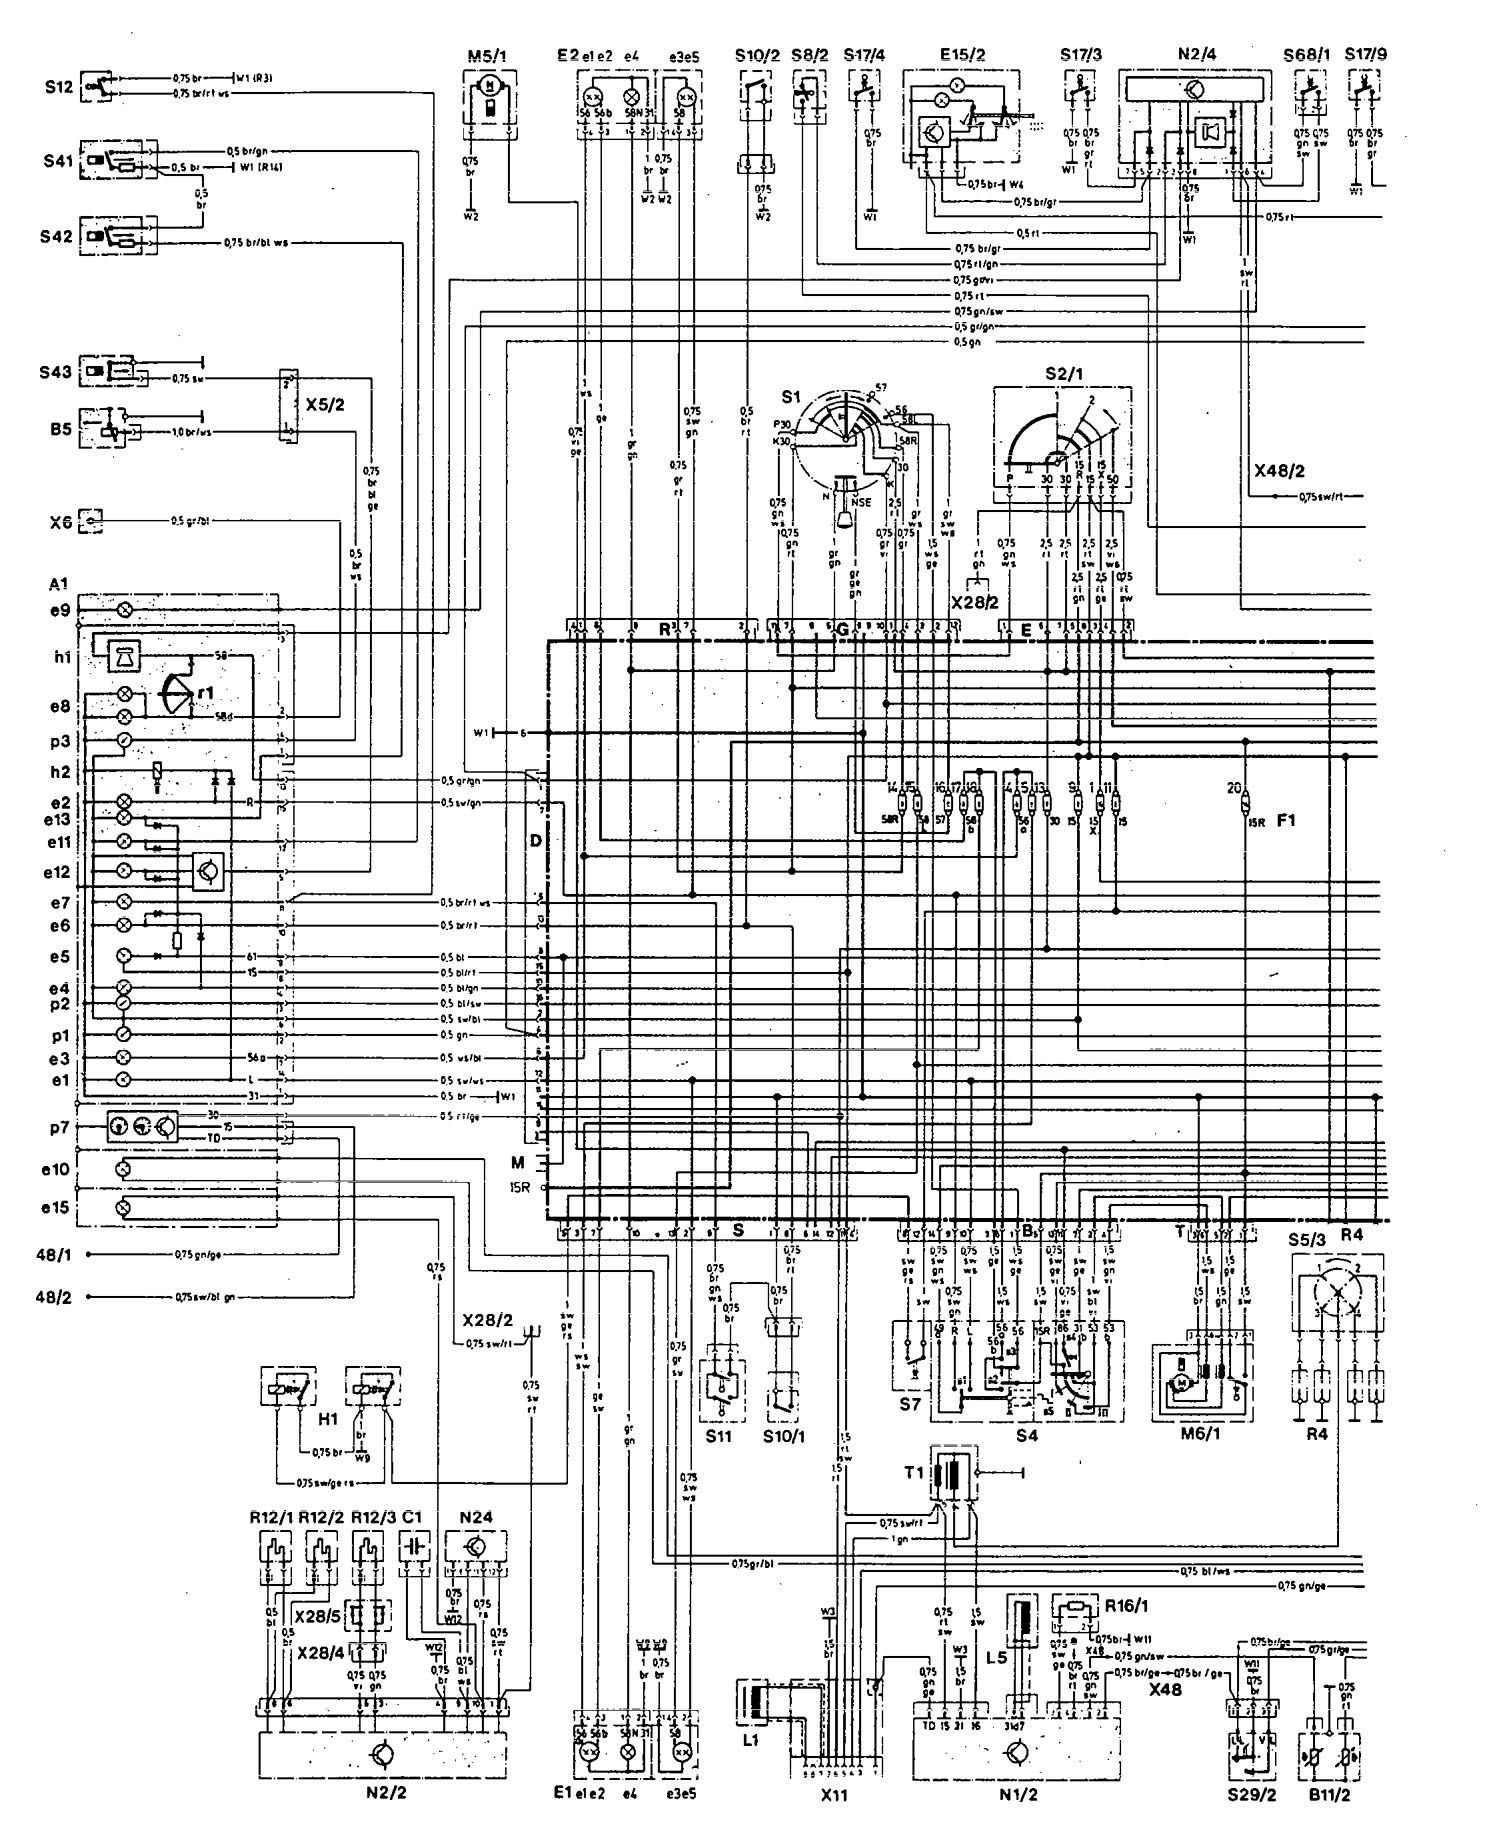 Mercedes Benz 190E (1992) - wiring diagrams - starting - CARKNOWLEDGE